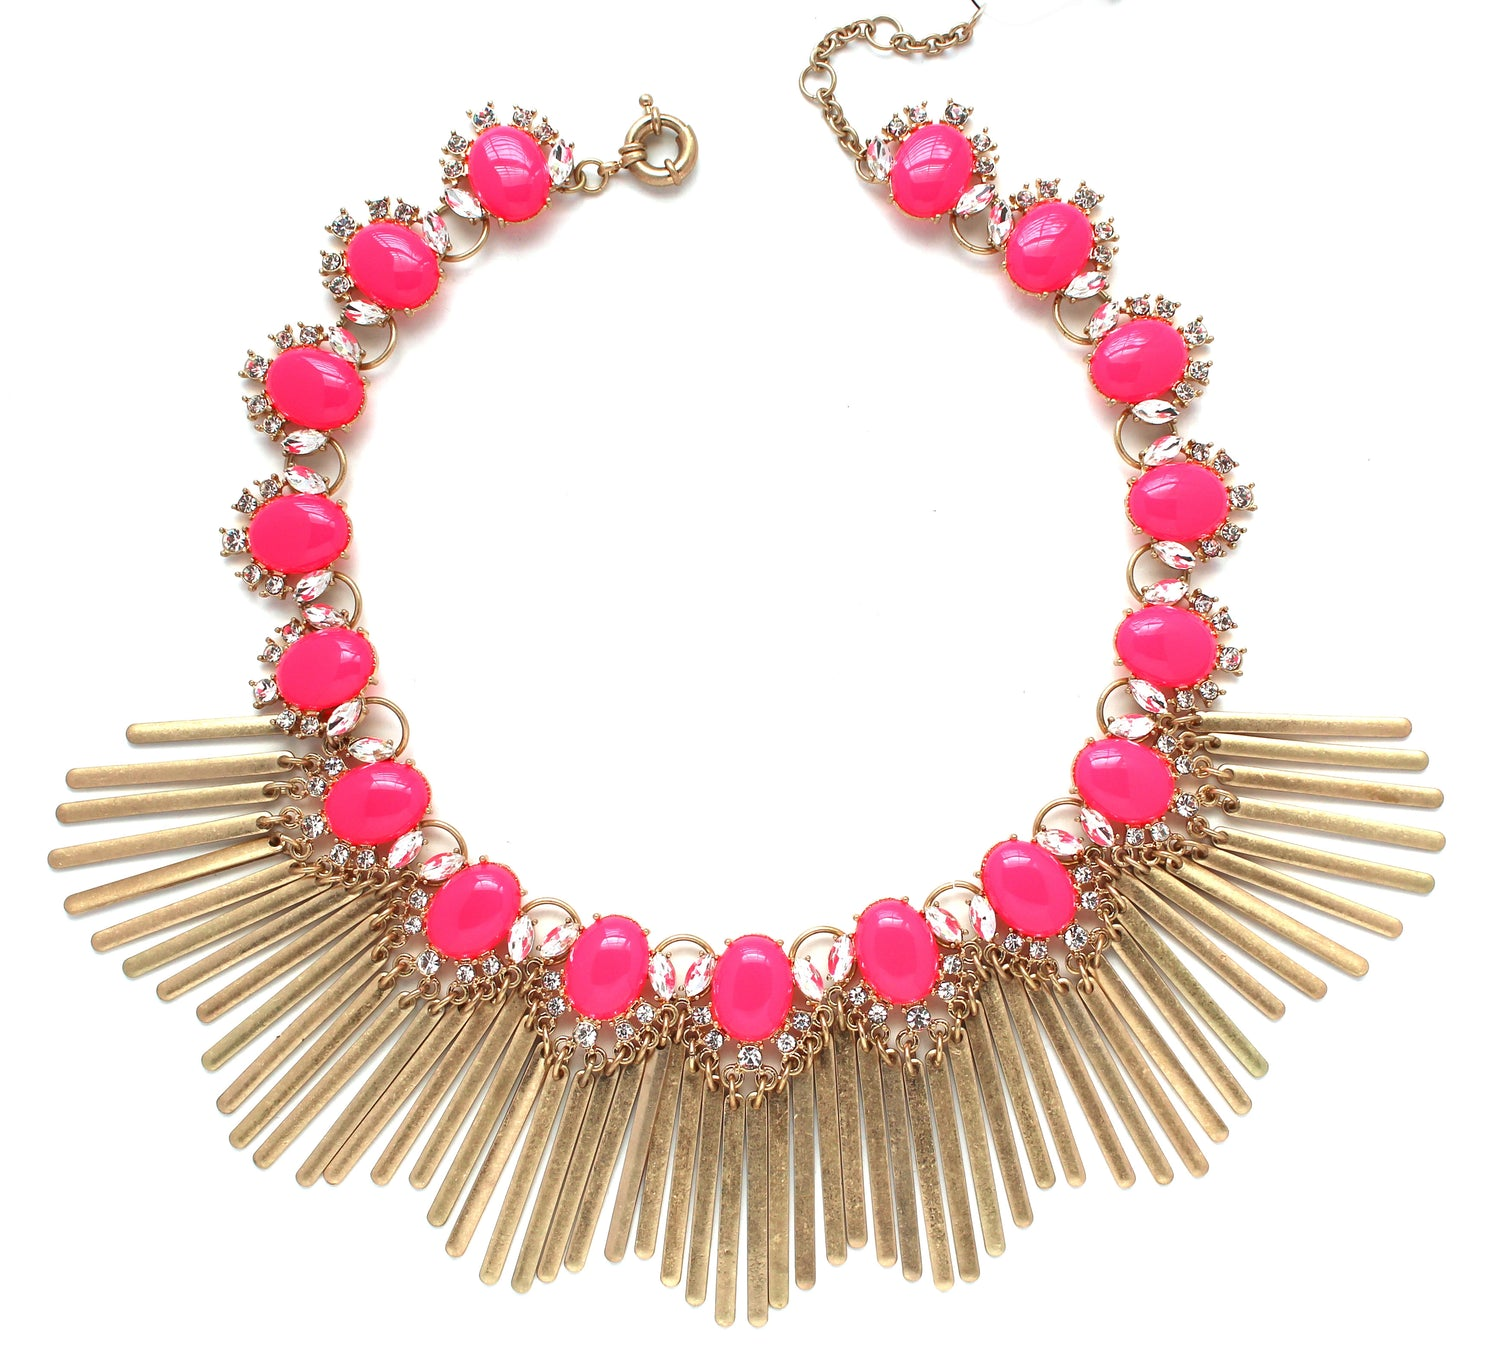 Boho Fringe Envy Statement Necklace- Hot Pink